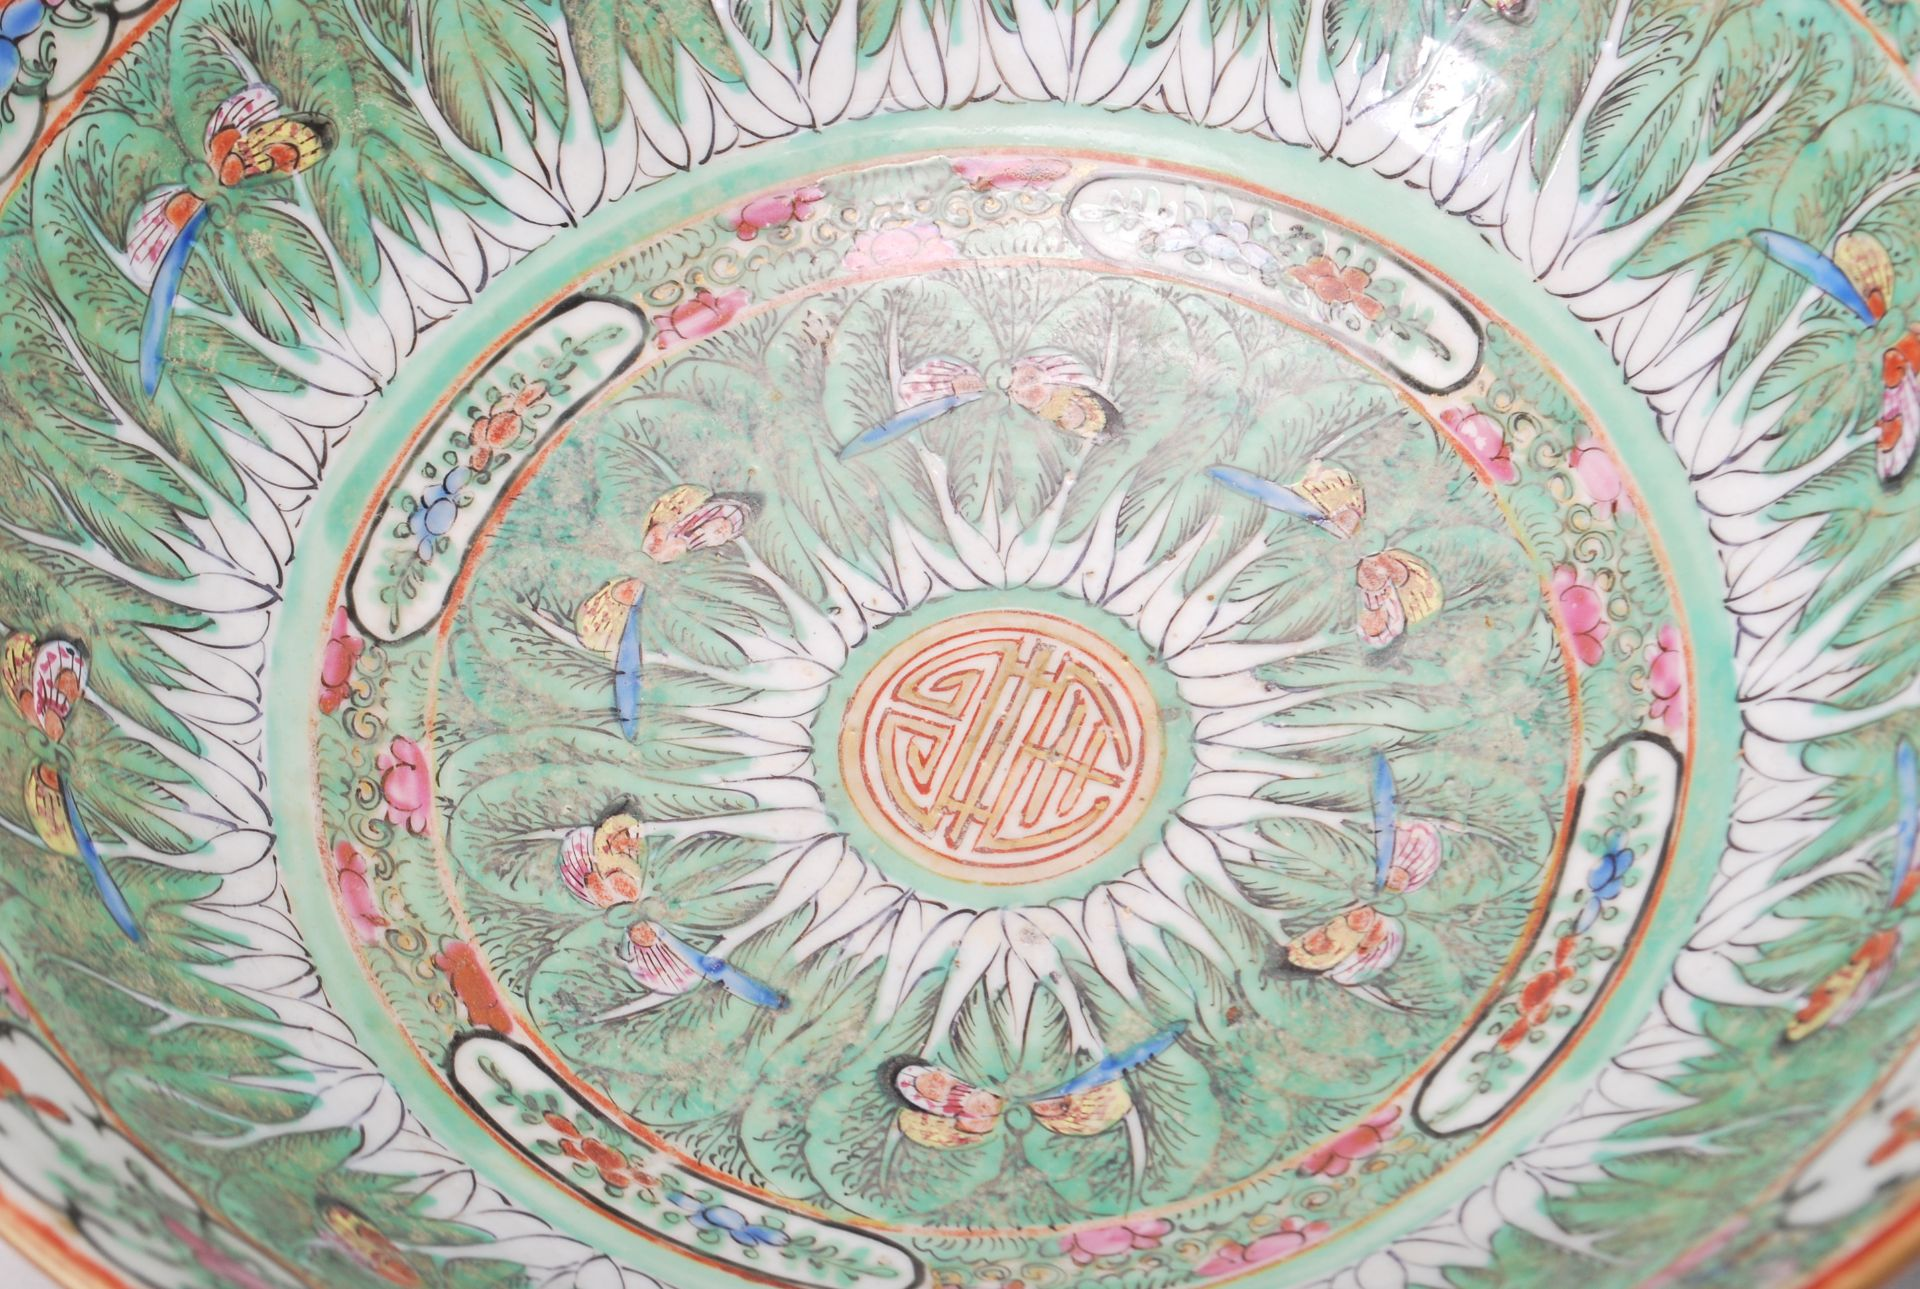 19TH CENTURY CHINESE ORIENTAL CENTRE PIECE BOWL - Image 6 of 11